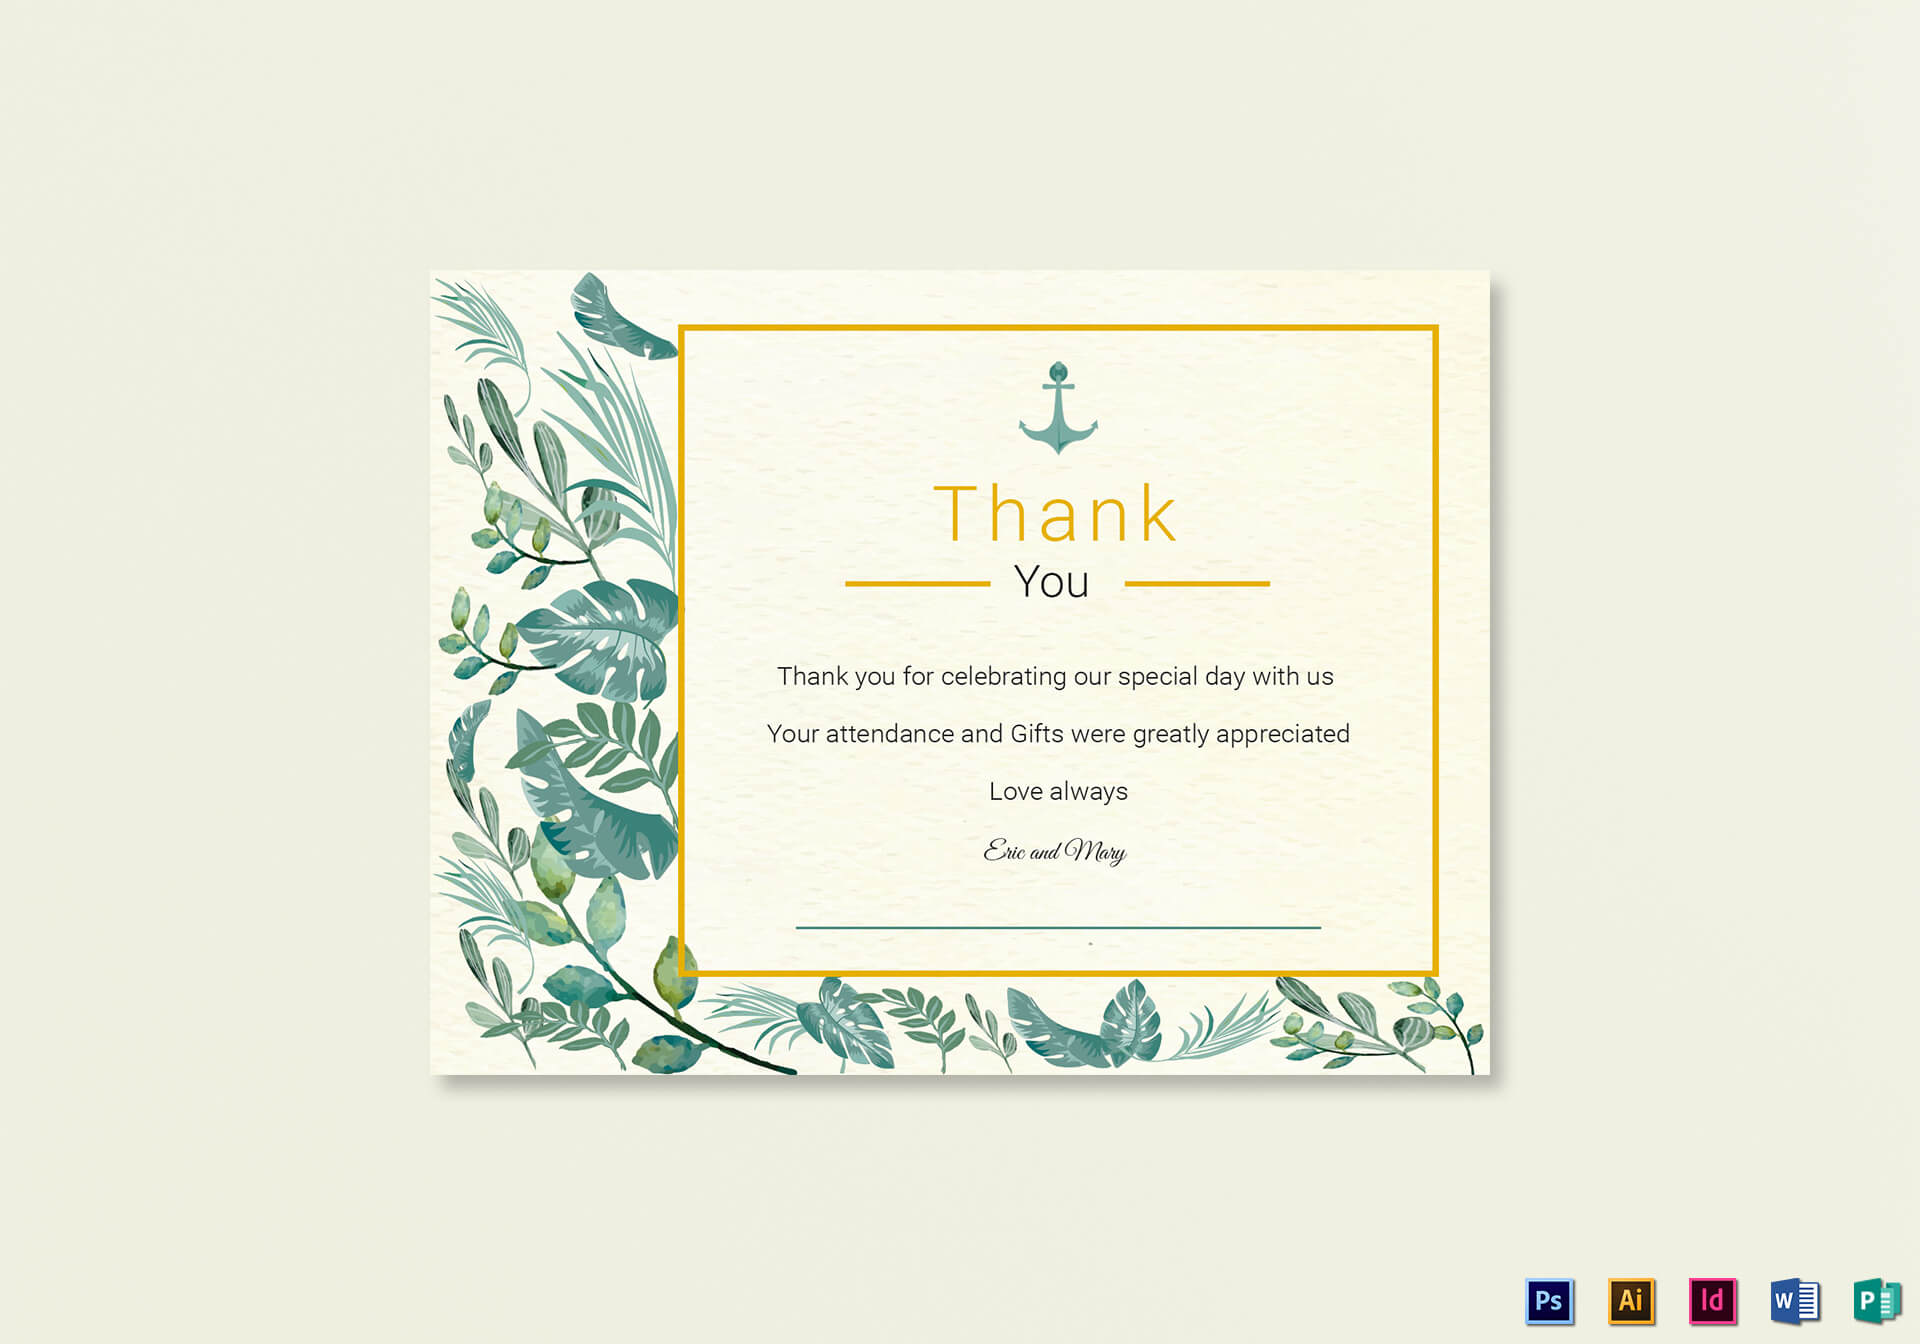 006 Thank You Cards Template Astounding Ideas What To Write Throughout Thank You Card Template Word